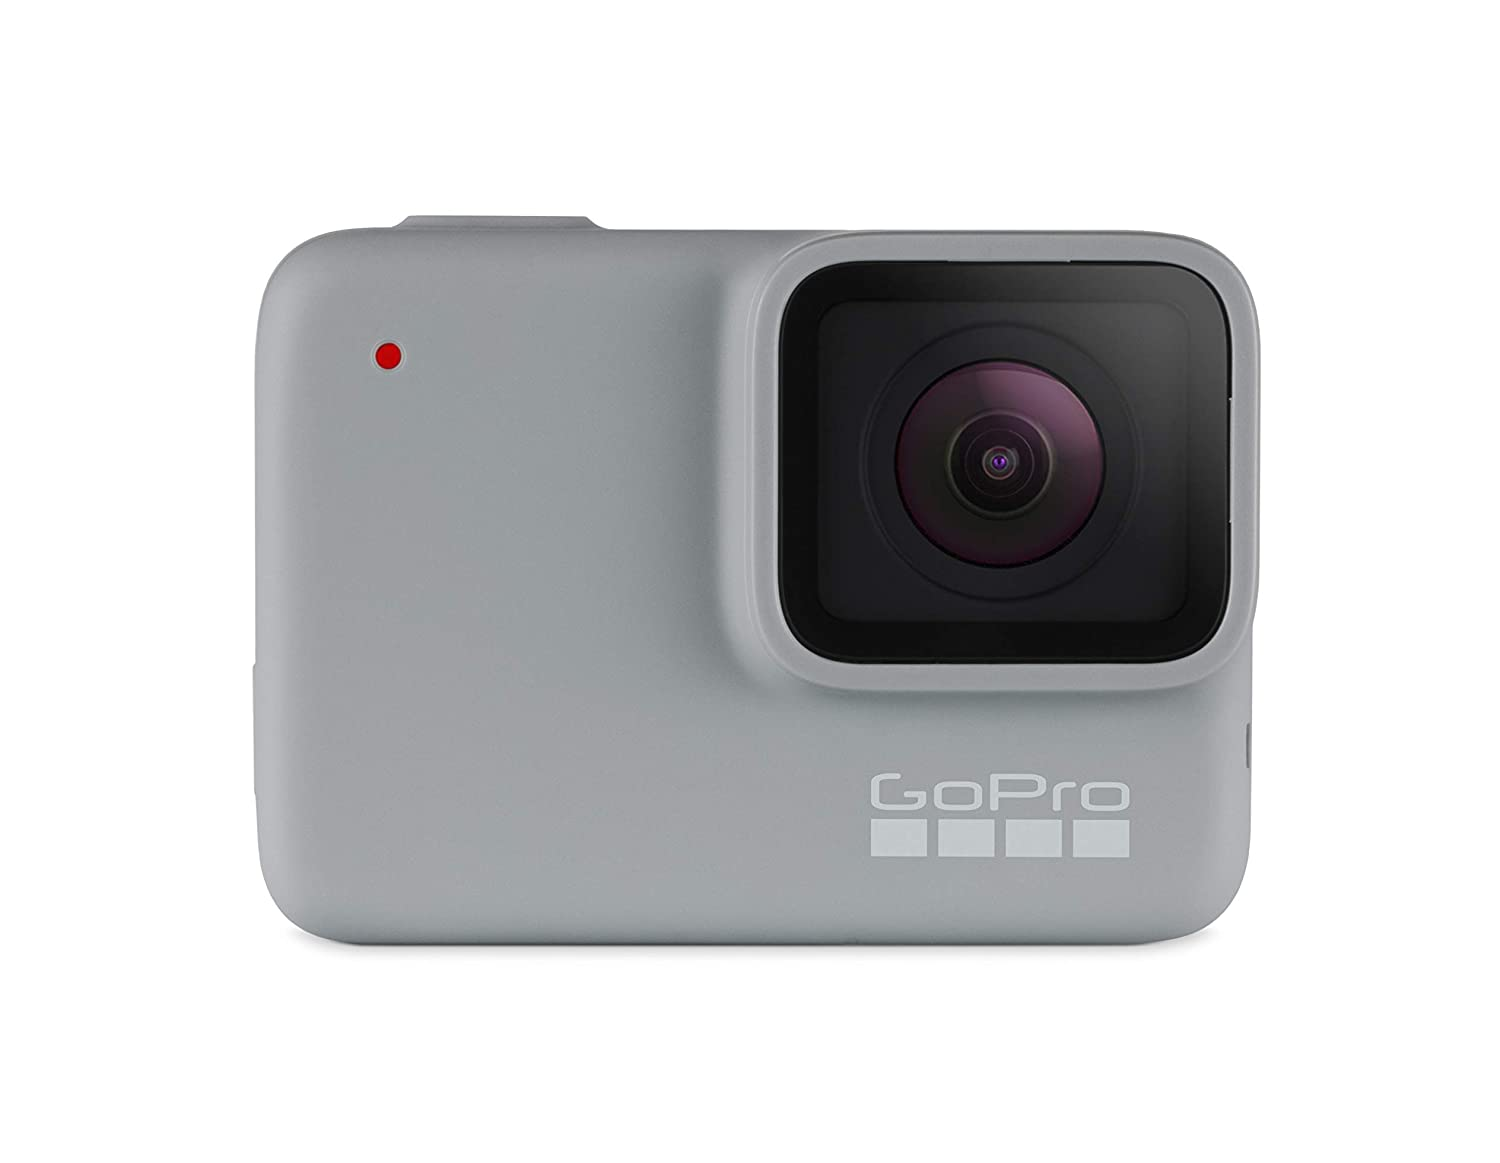 GoPro HERO7 White — Waterproof Digital Action Camera with Touch Screen 1440p HD Video 10MP Photos GoPro Camera CHDHB-601